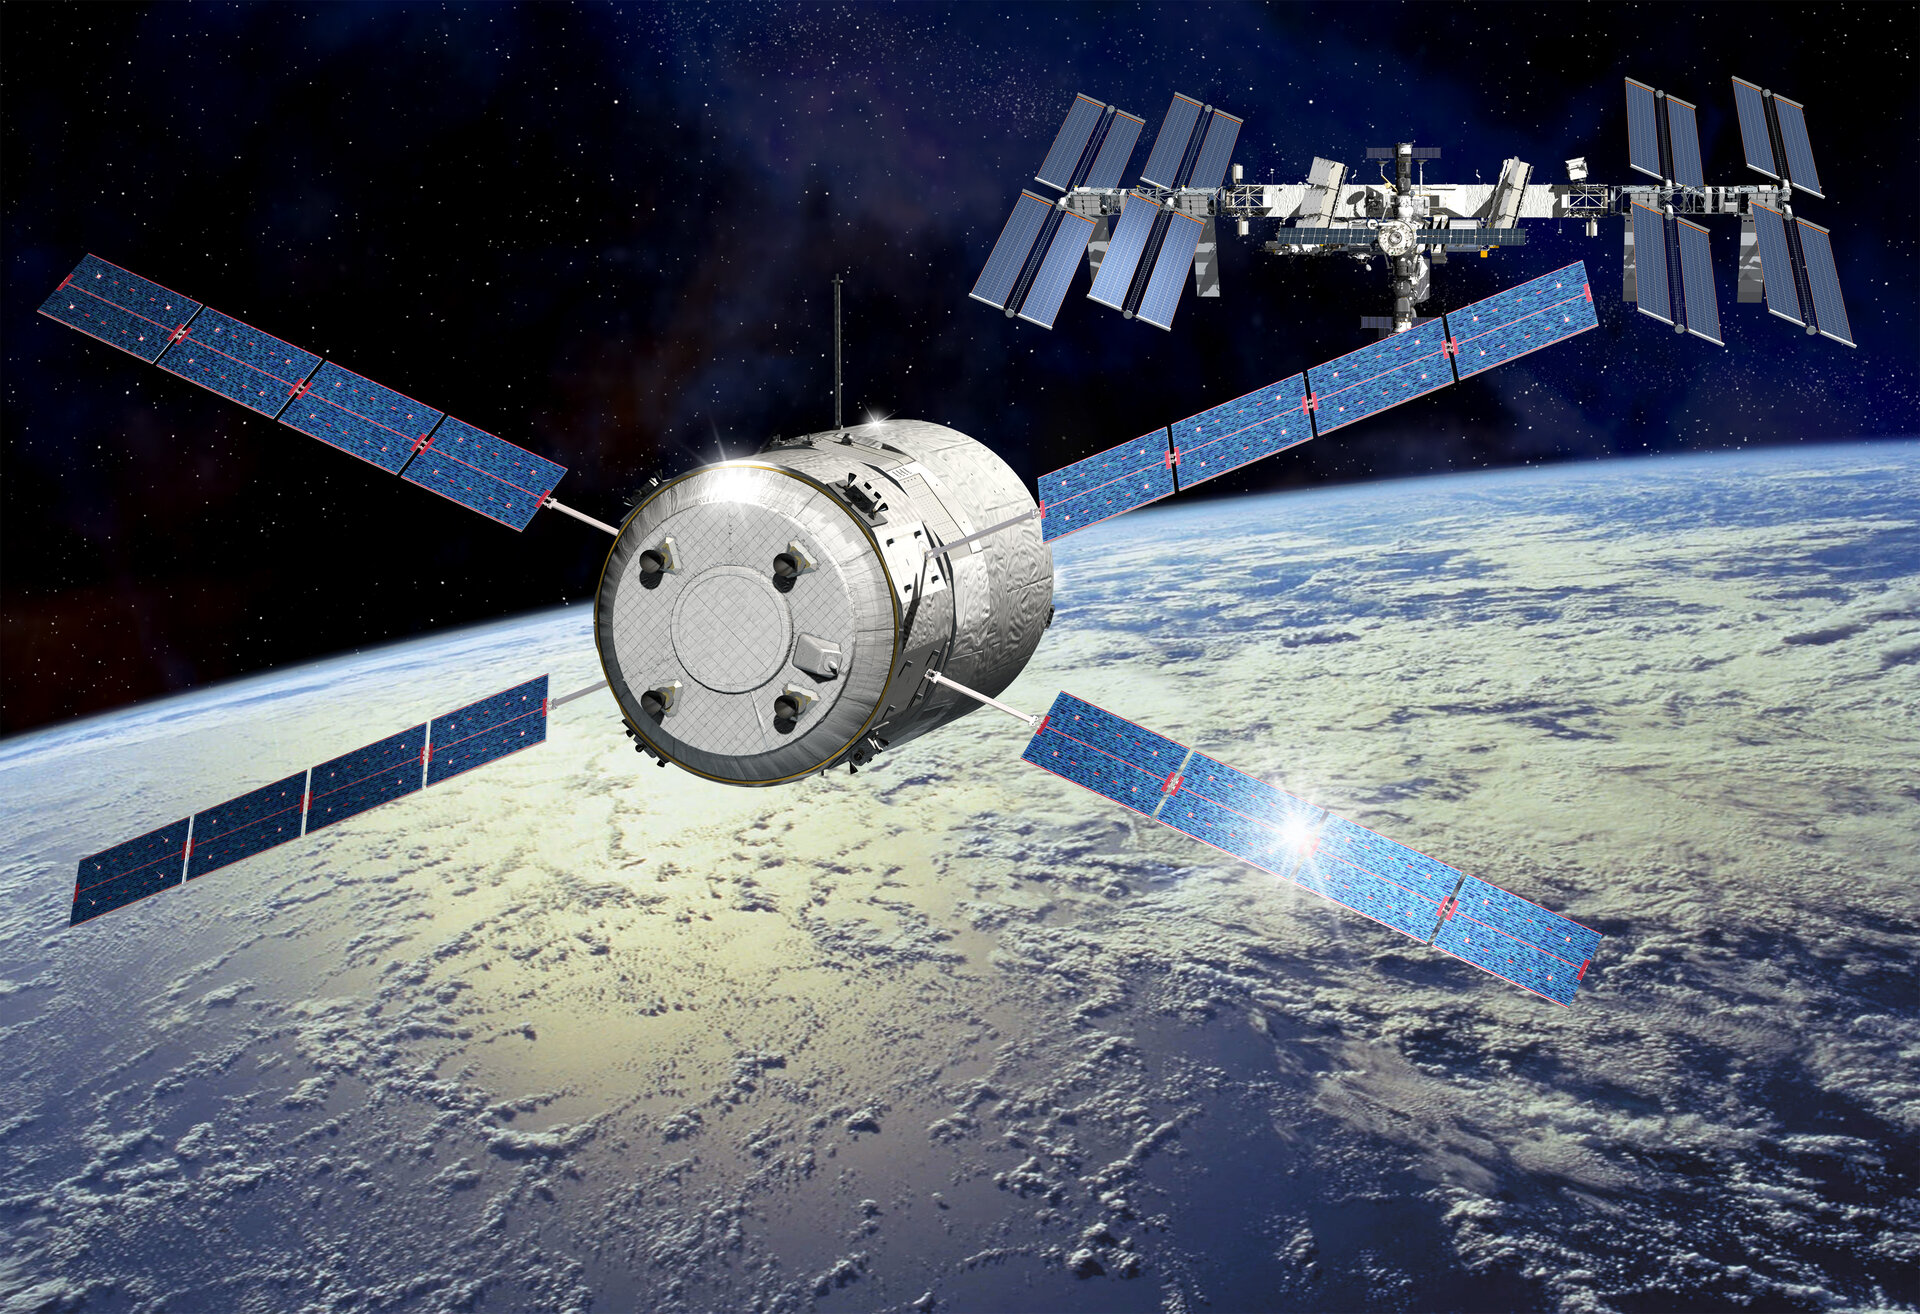 Artist's impression showing ATV-5 approaching the ISS